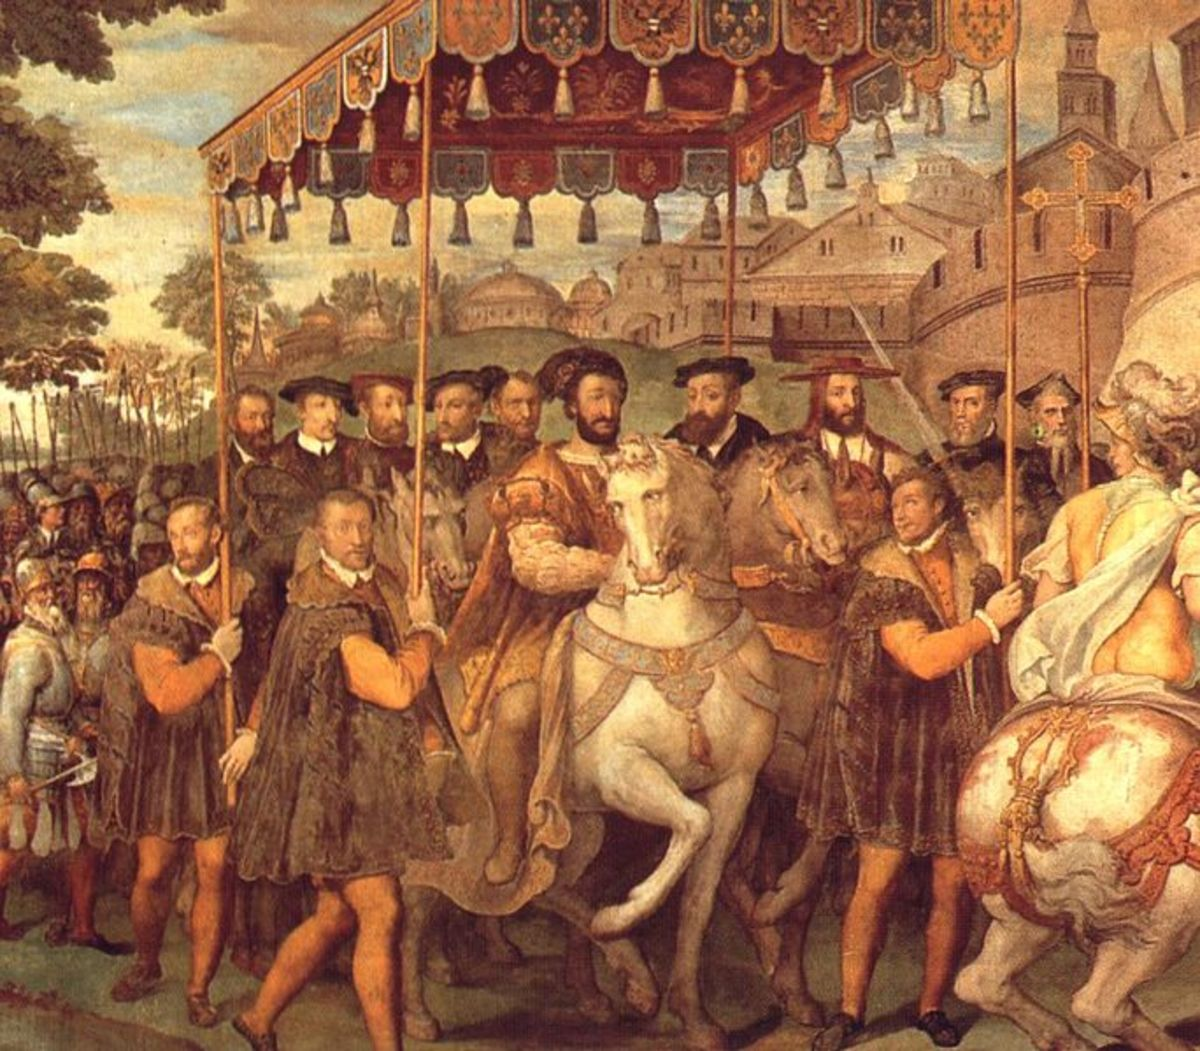 Taddeo Zuccari, Palace of Caprarola (a. 1560), The  Emperor Charles V, Francis I of France, and  the cardinal Alessandro  Farnese enter in Paris in 1540